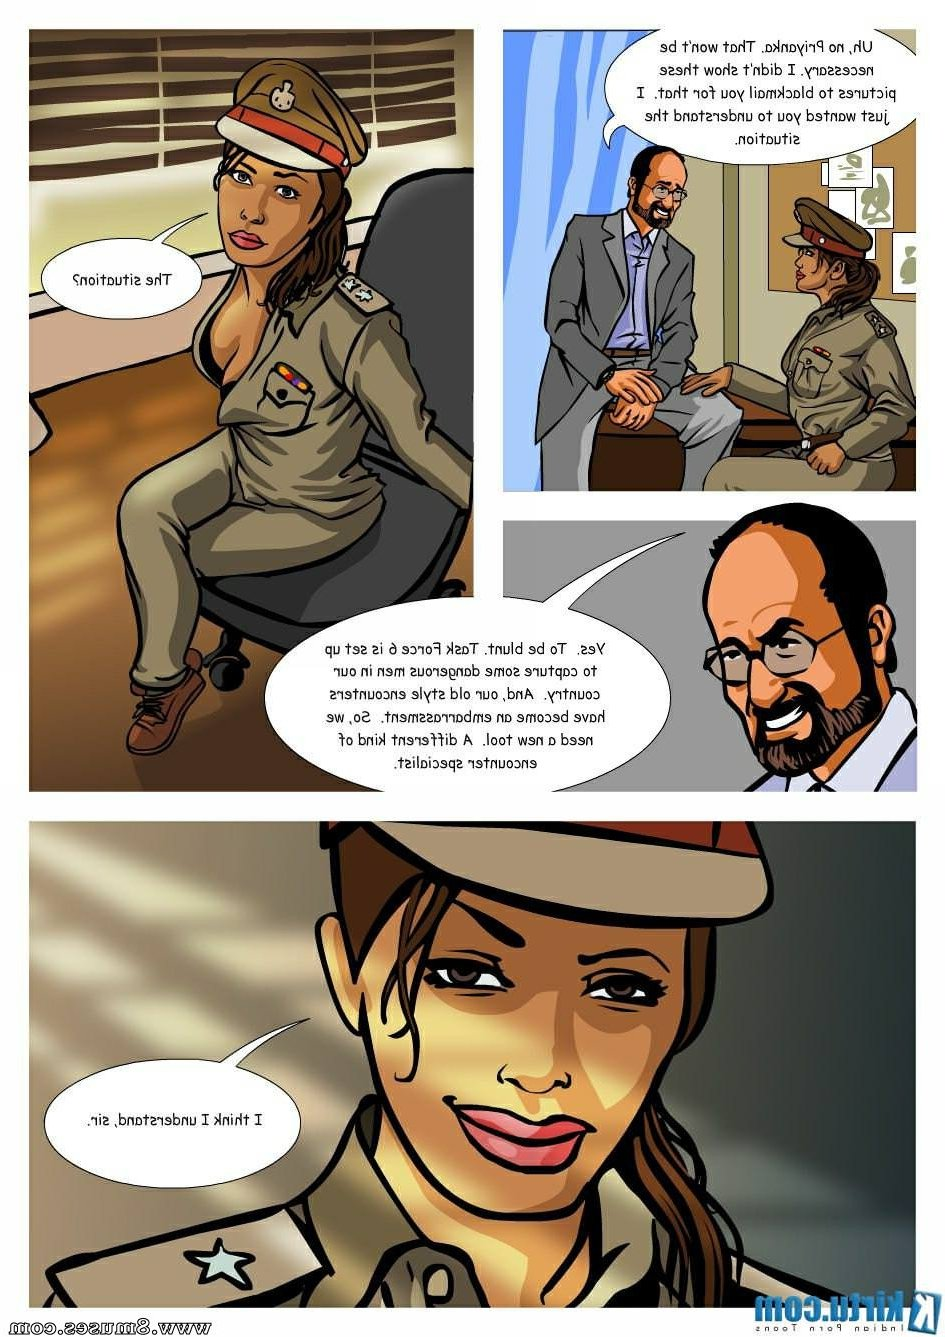 Kirtu_com-Comics/Priya-Rao-The-Encounter-Specialist/Issue-1 Priya_Rao_-_The_Encounter_Specialist_-_Issue_1_8.jpg